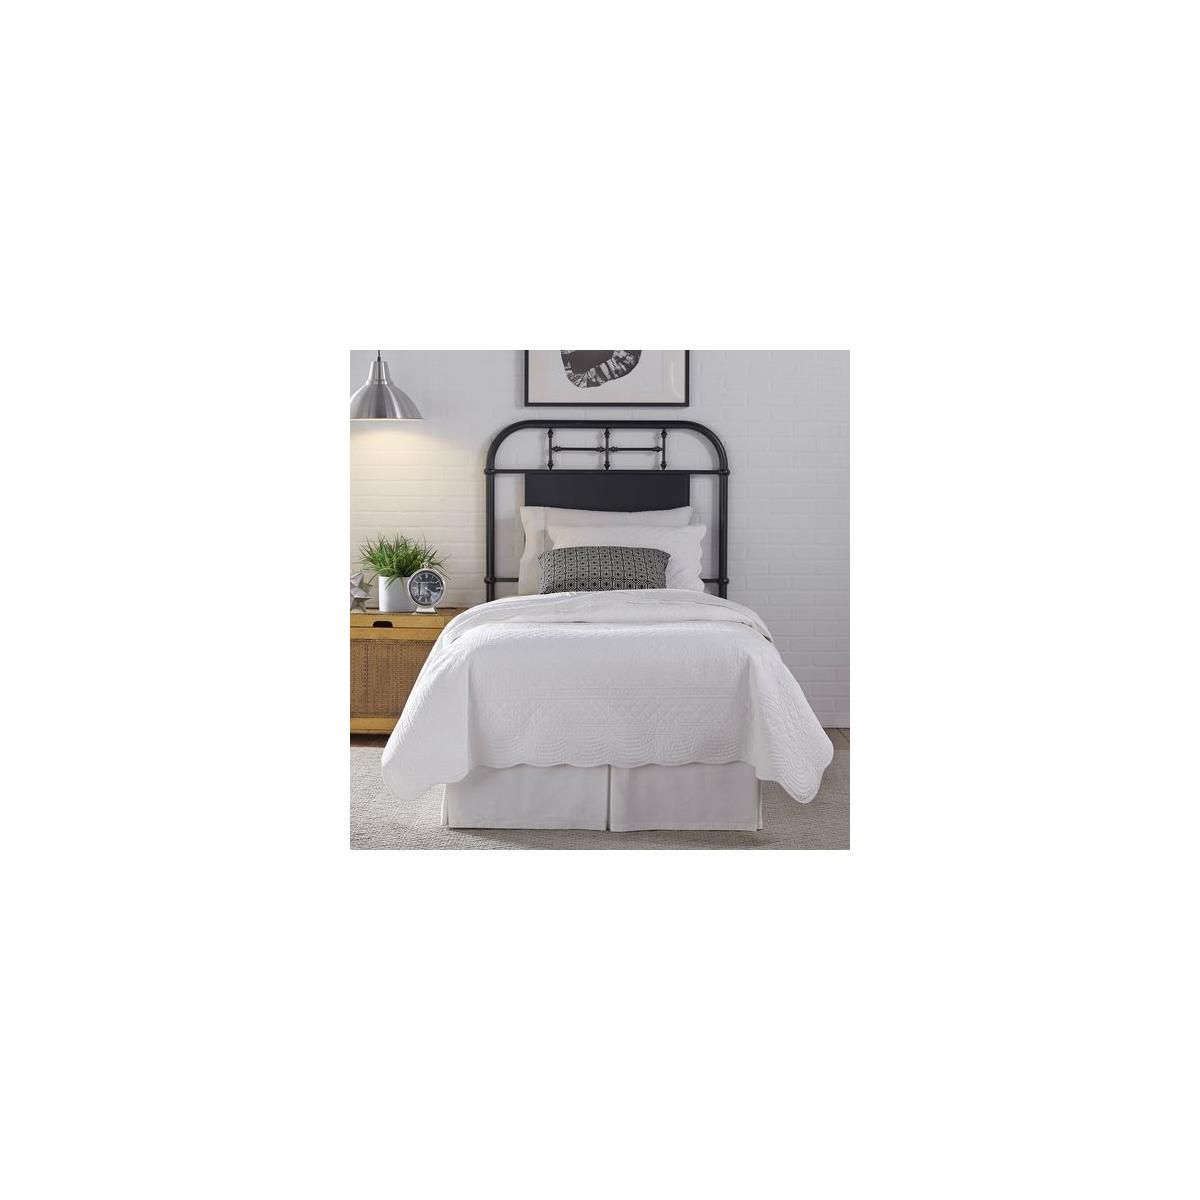 Twin Metal Headboard - Black